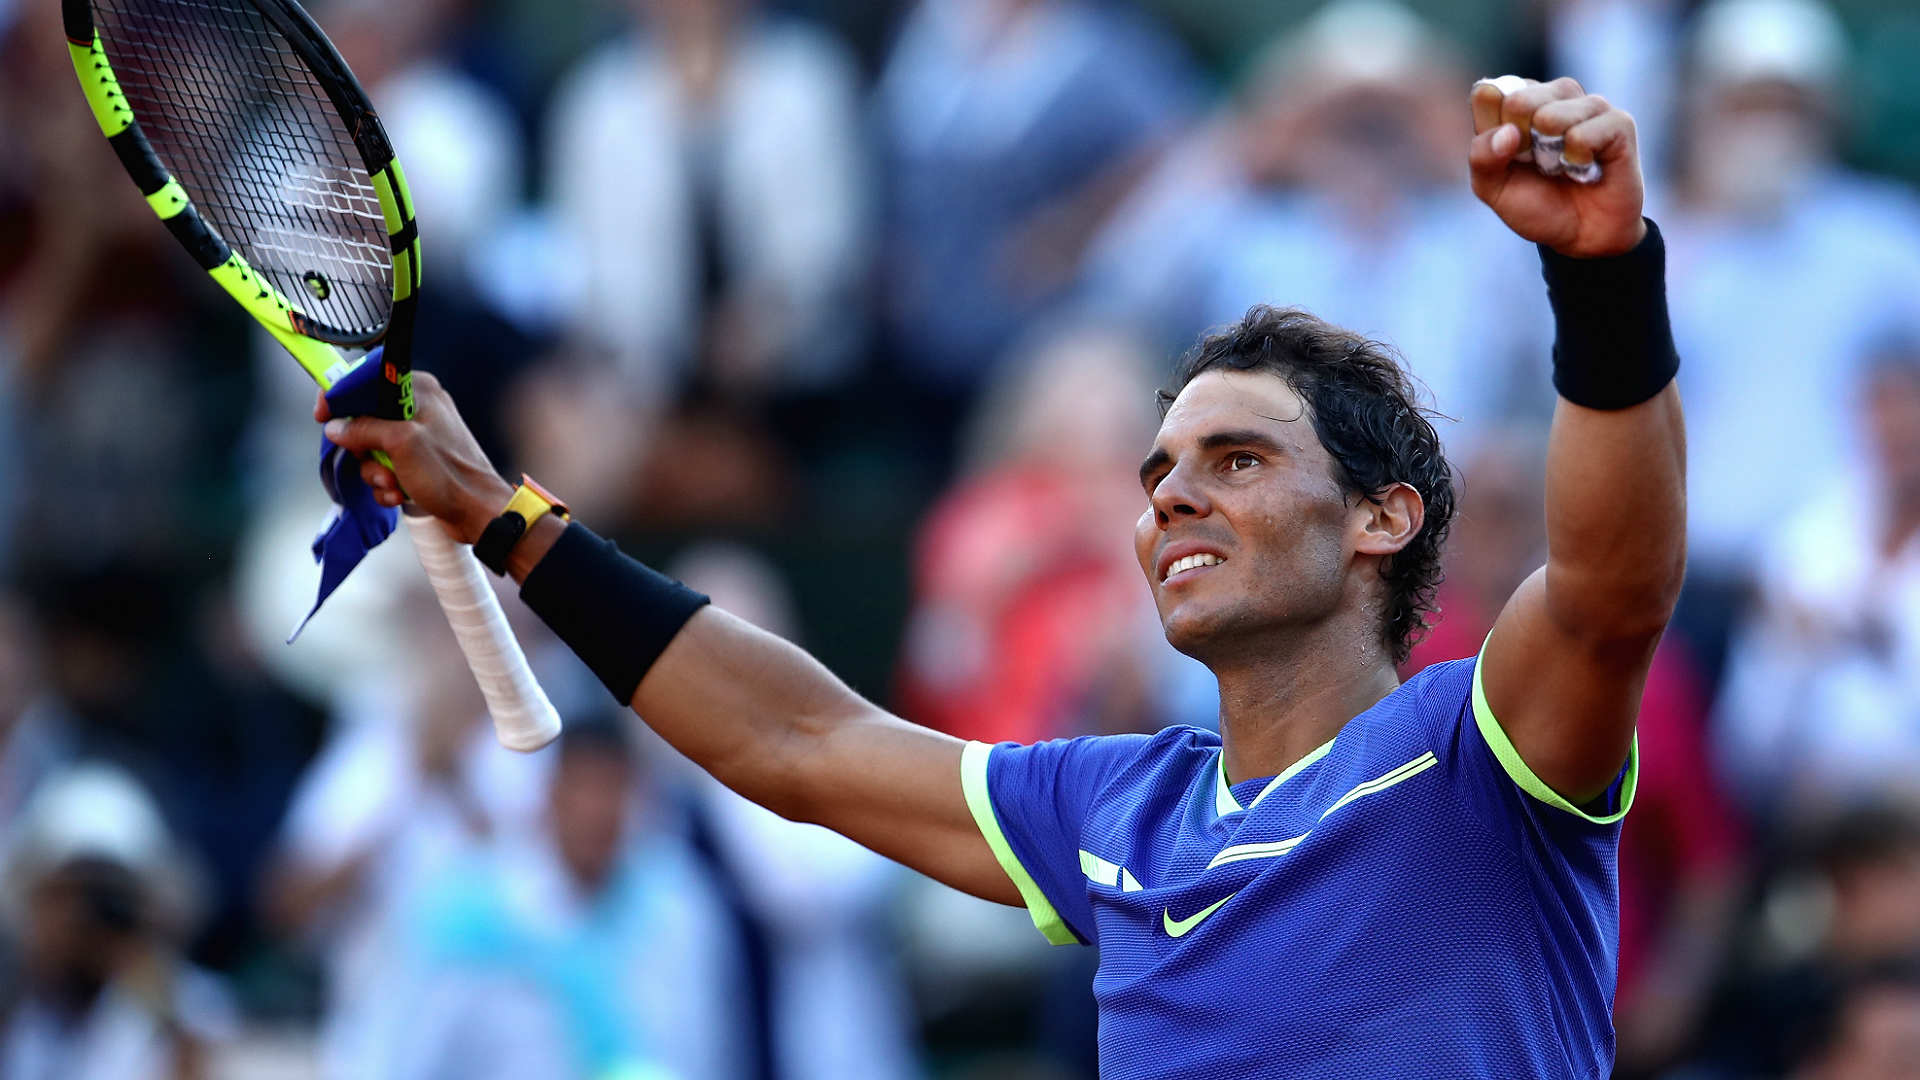 Rafael Nadal News: French Open 2017: Live Scores, Results For Halep Vs